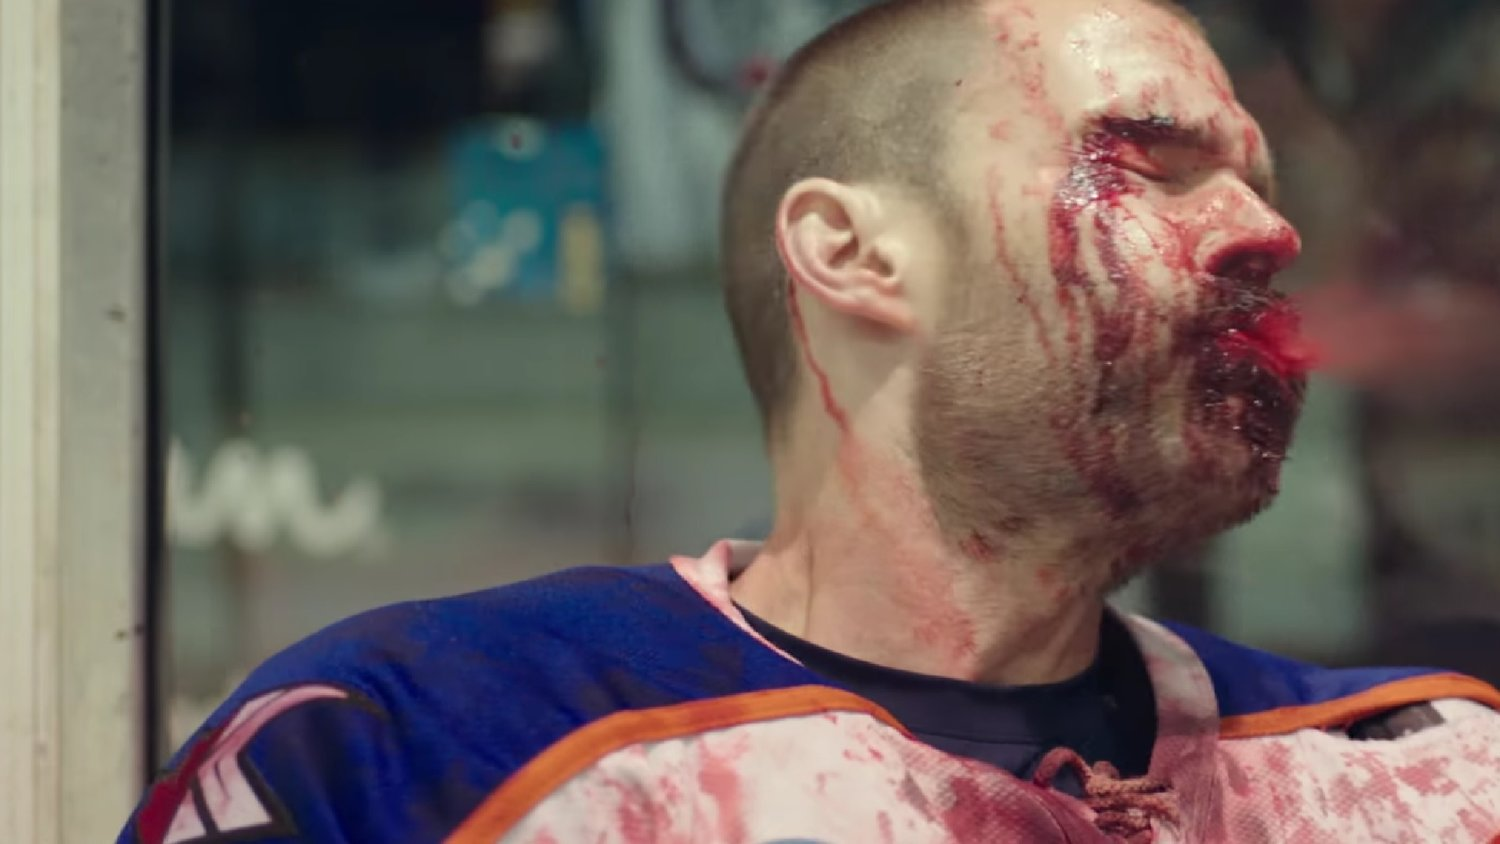 Seann William Scott Gets Brutalized in New Red Band Trailer for GOON: LAST OF THE ENFORCERS